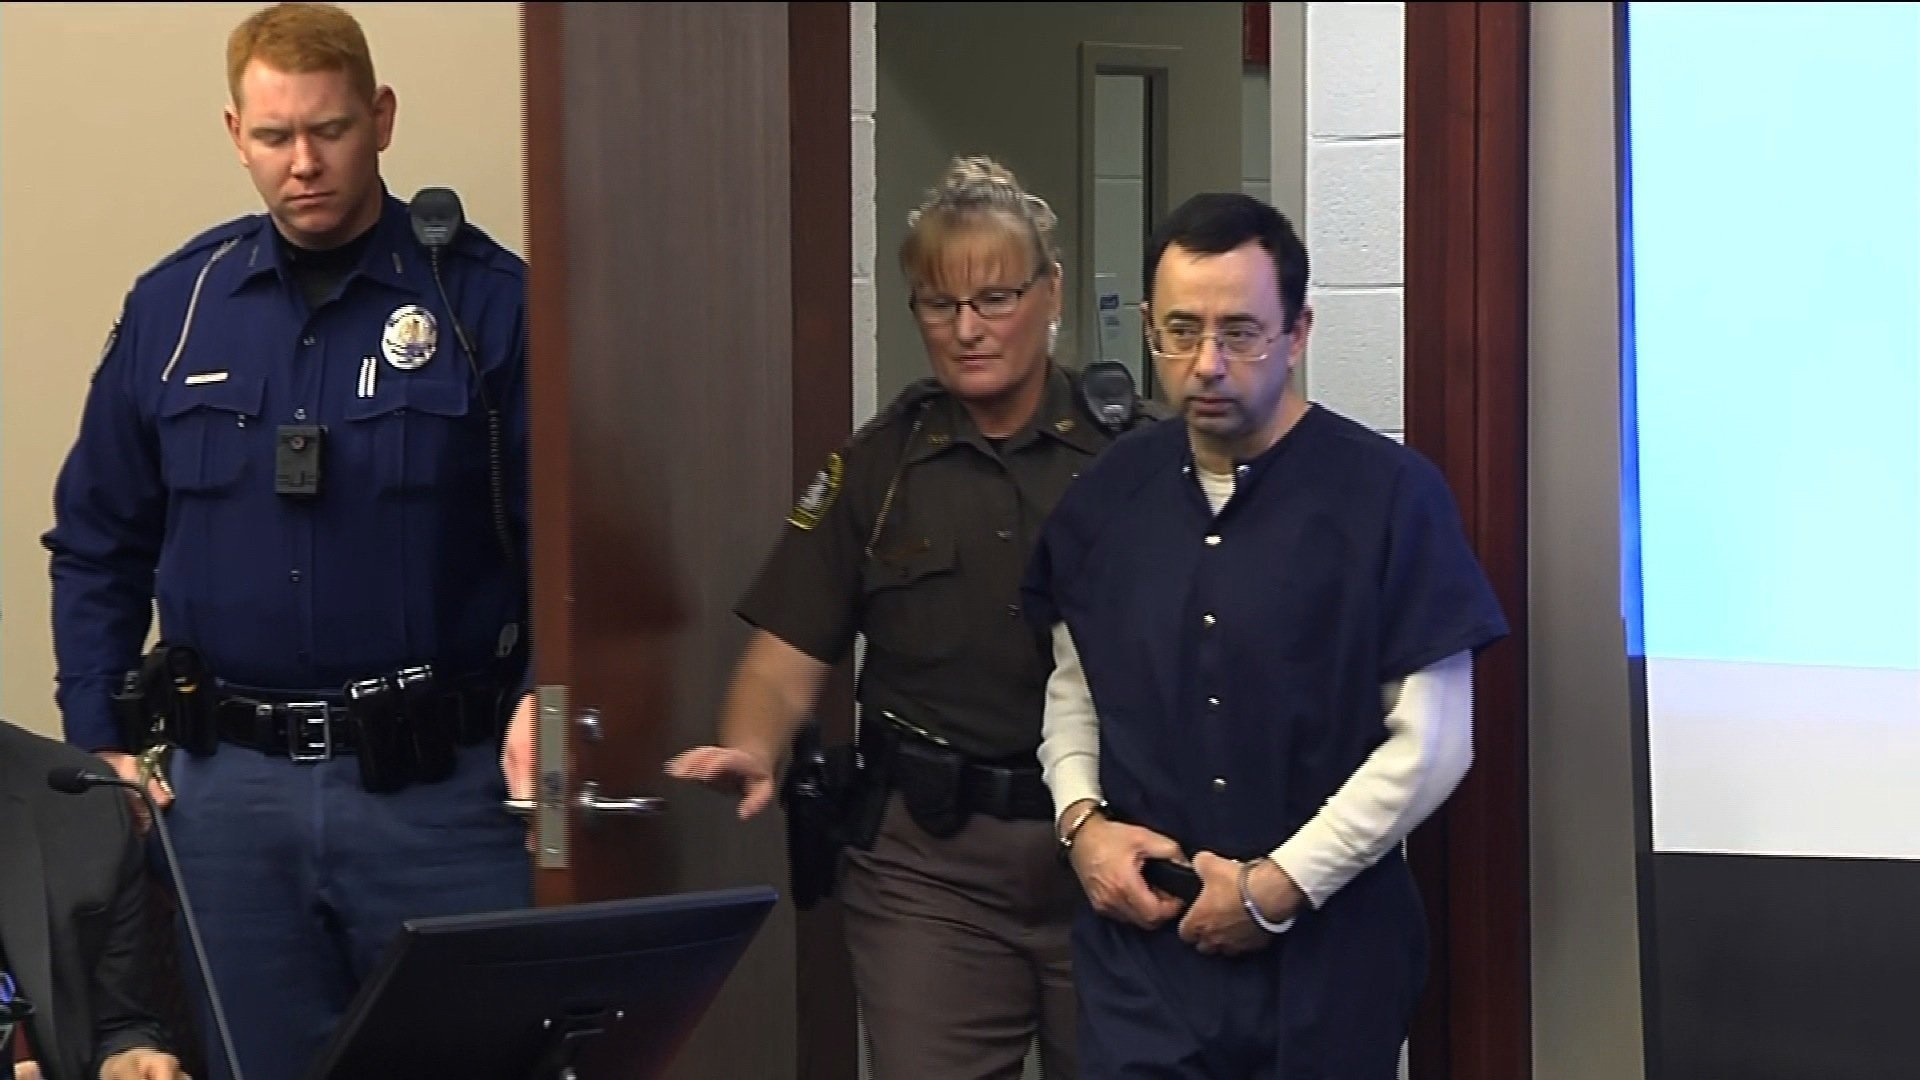 The NCAA has opened an investigation into Michigan State University's handling of sexual abuse allegations against sports doctor Larry Nassar.